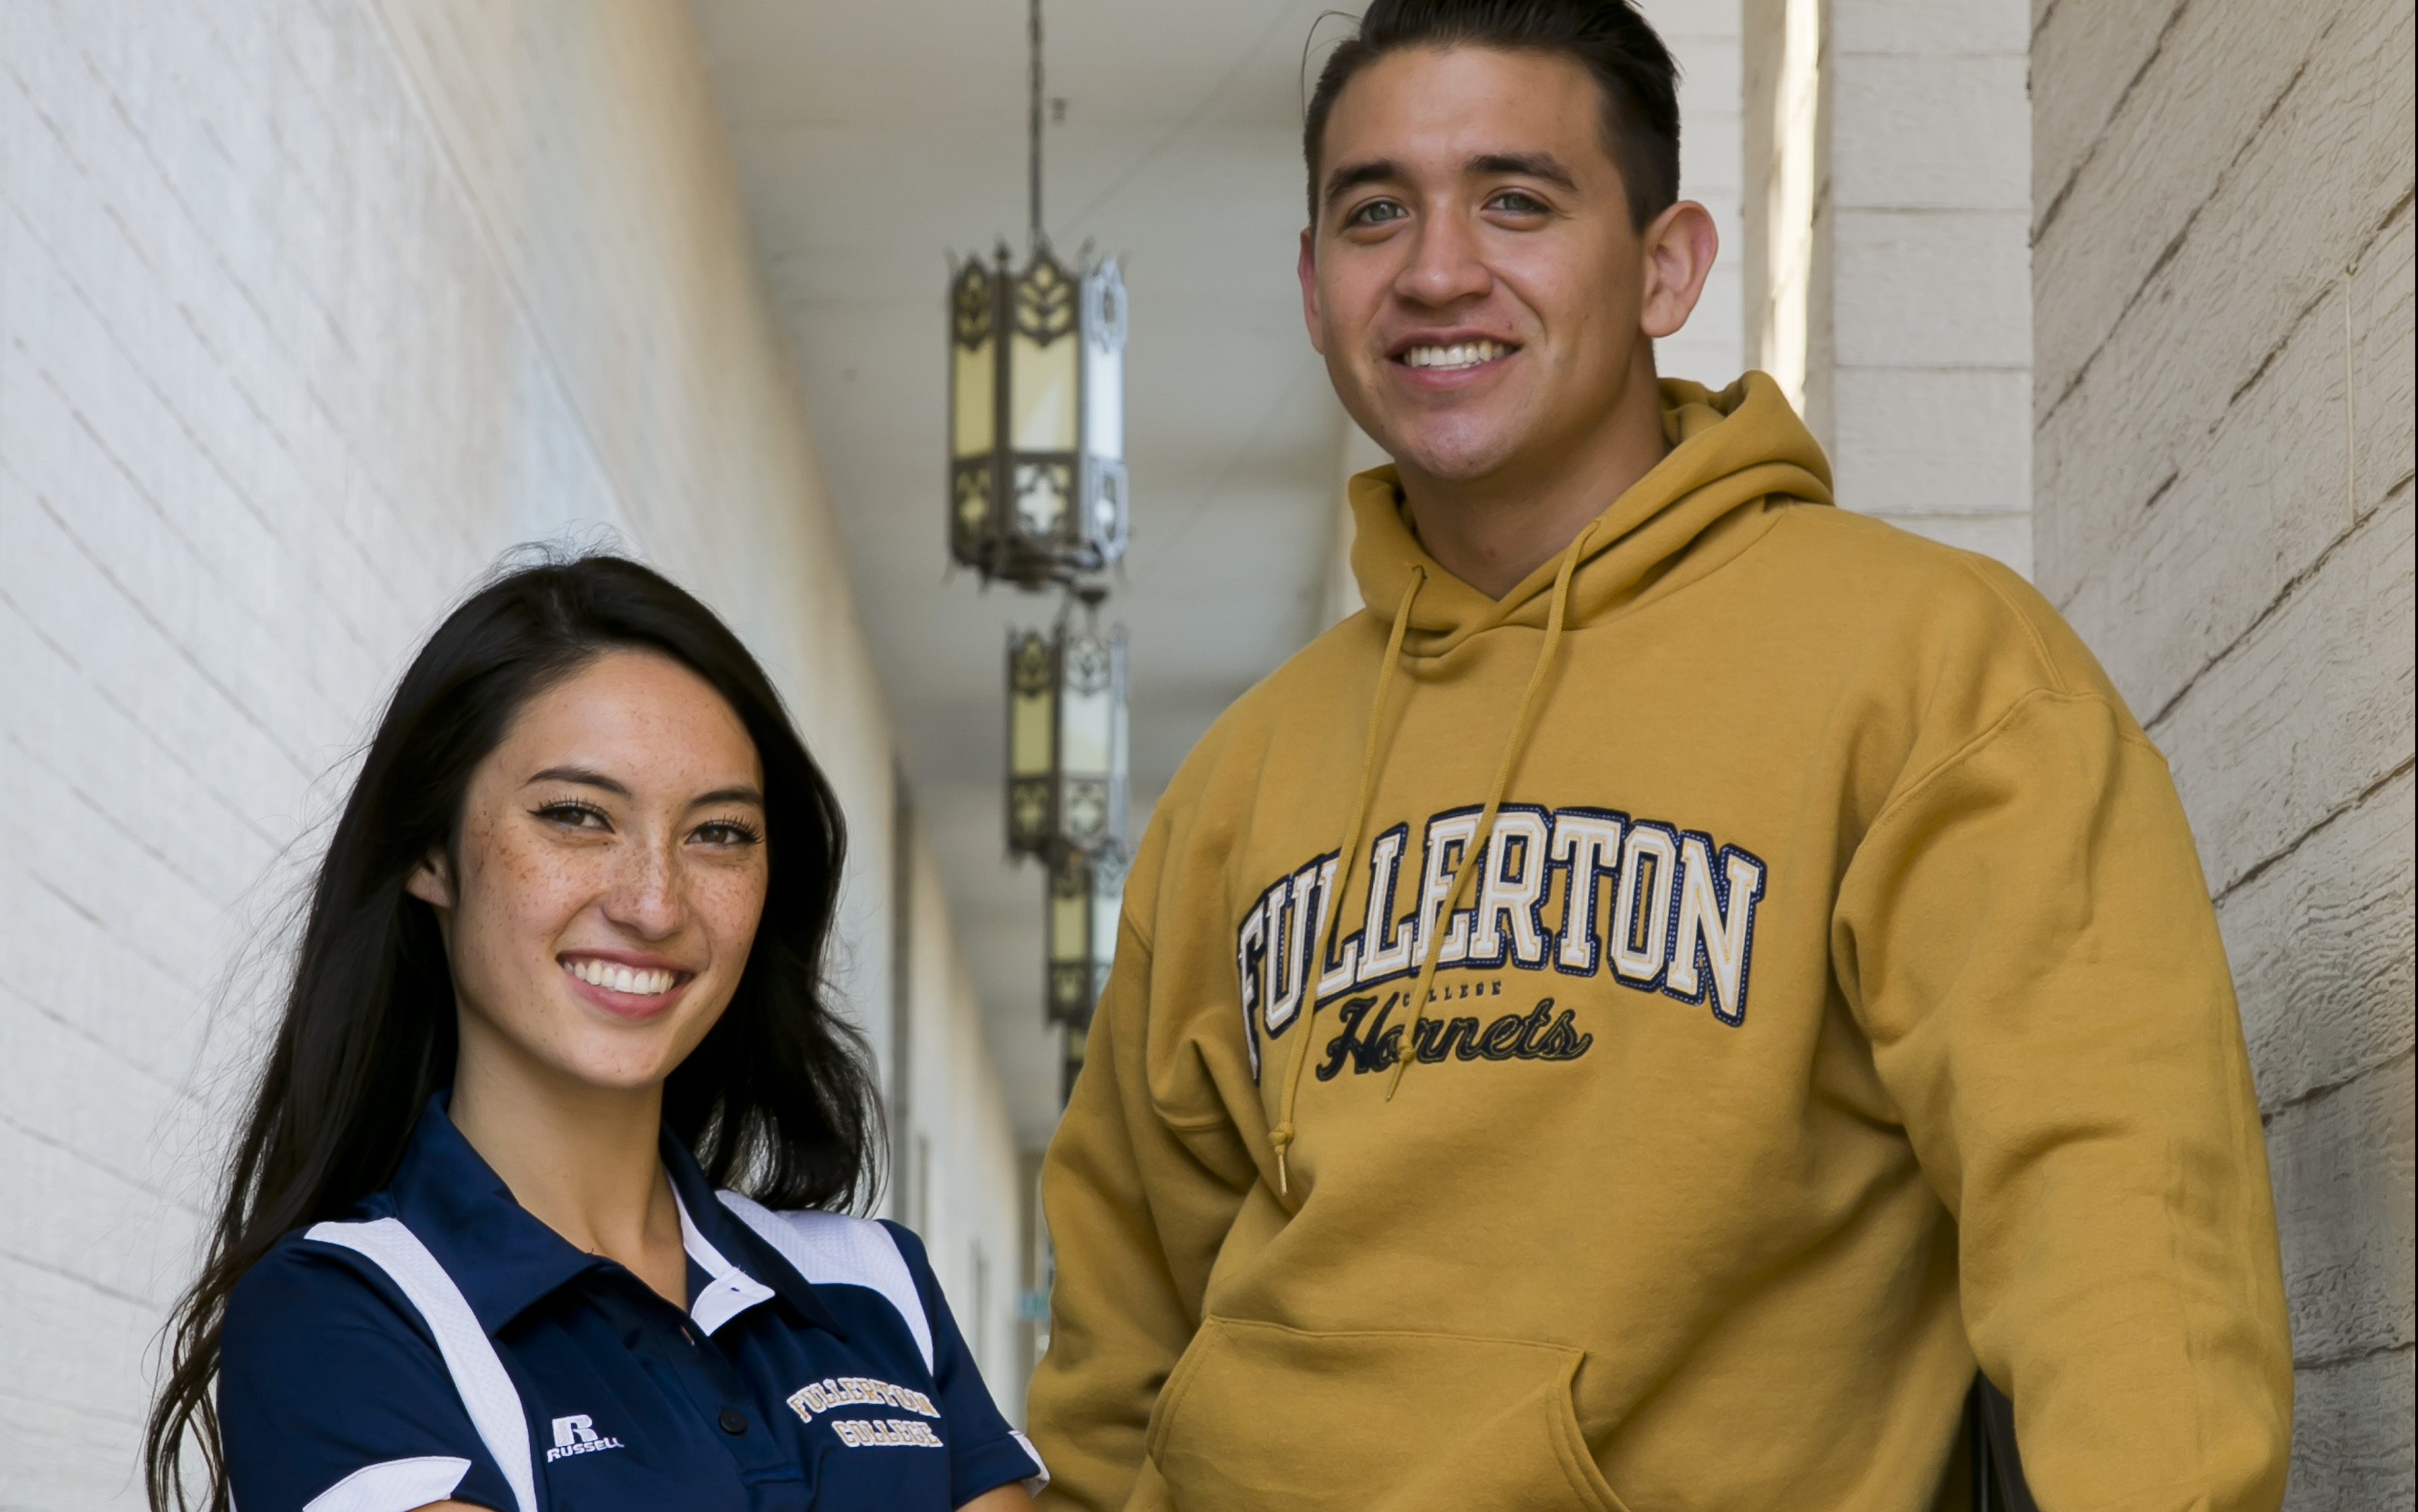 Fullerton College students proudly sporting Hornets gear.